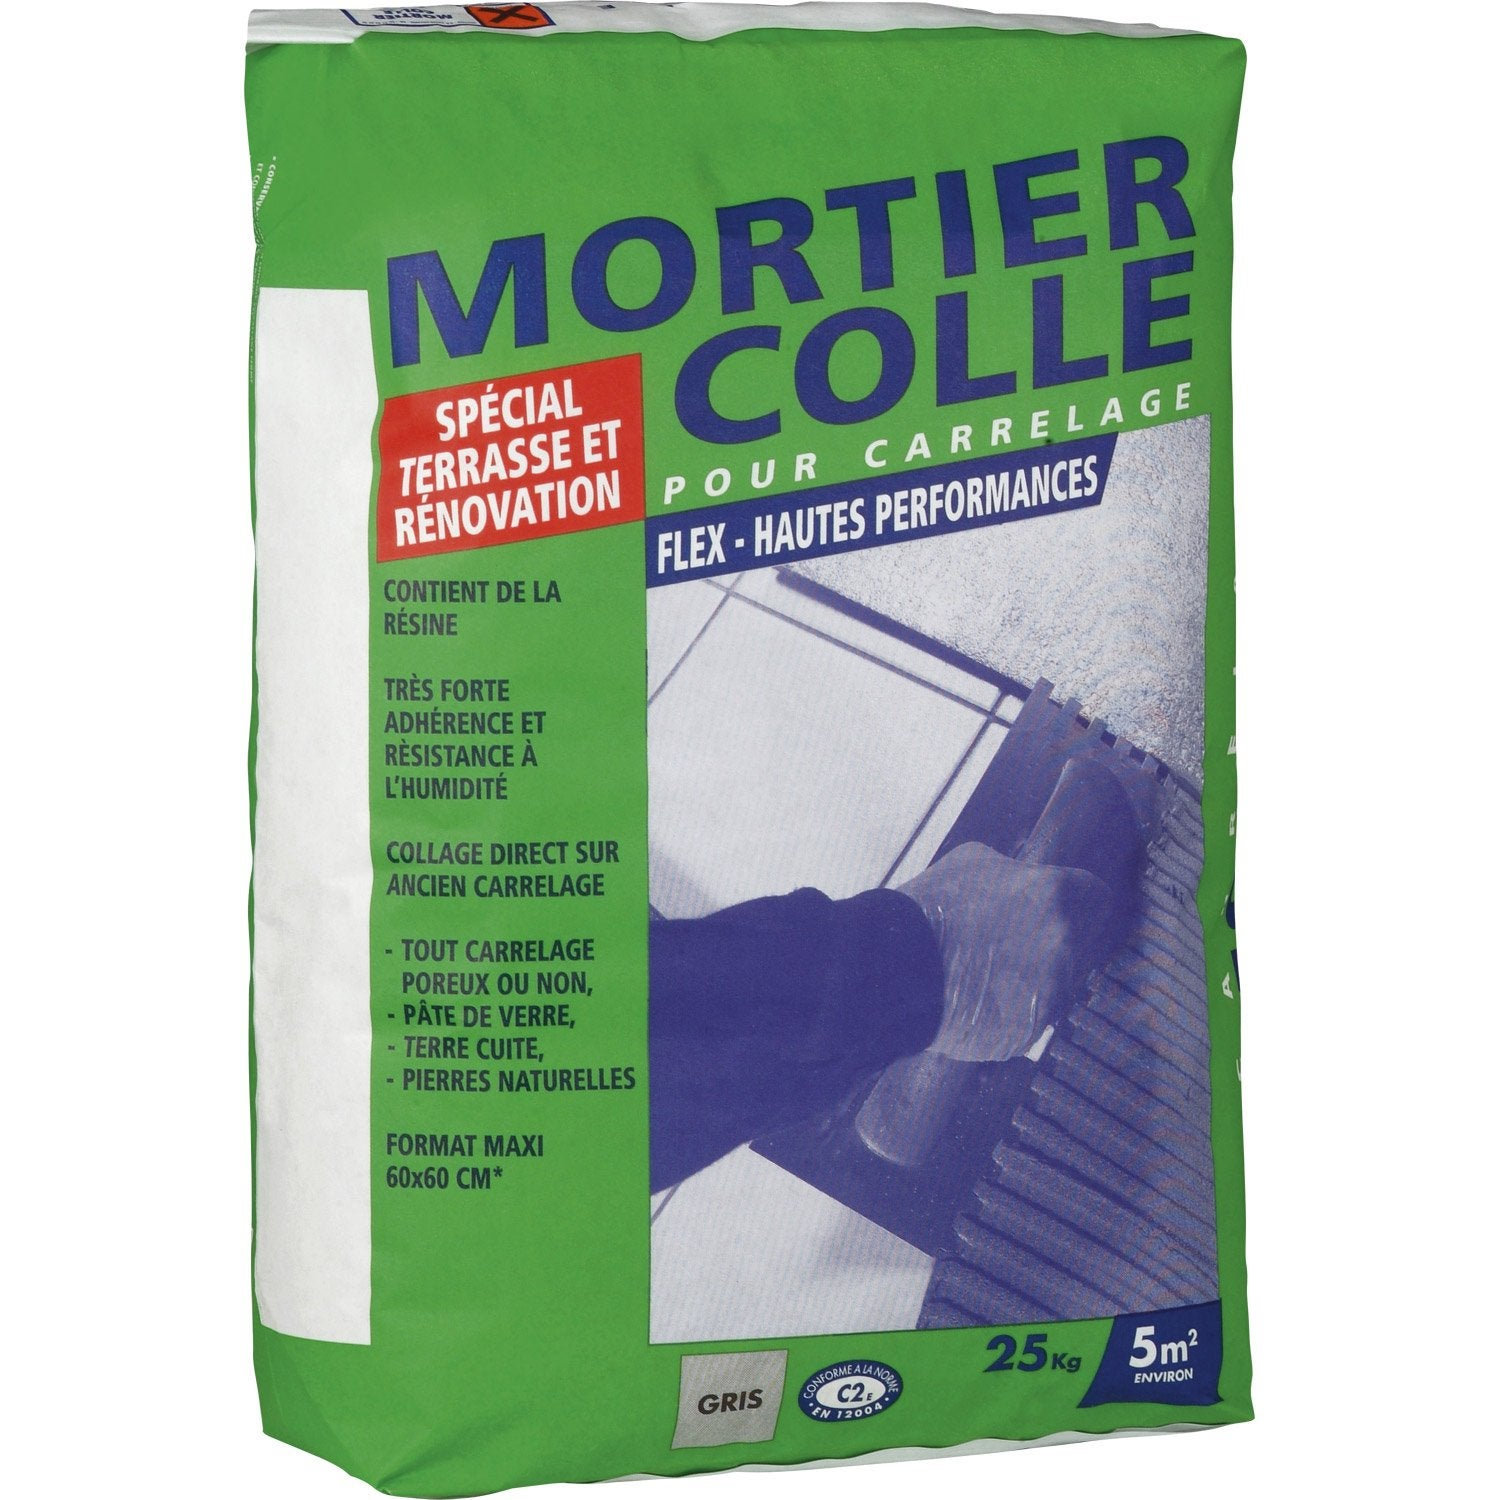 Mortier colle flex gris 25 kg leroy merlin - Leroy merlin colle carrelage ...